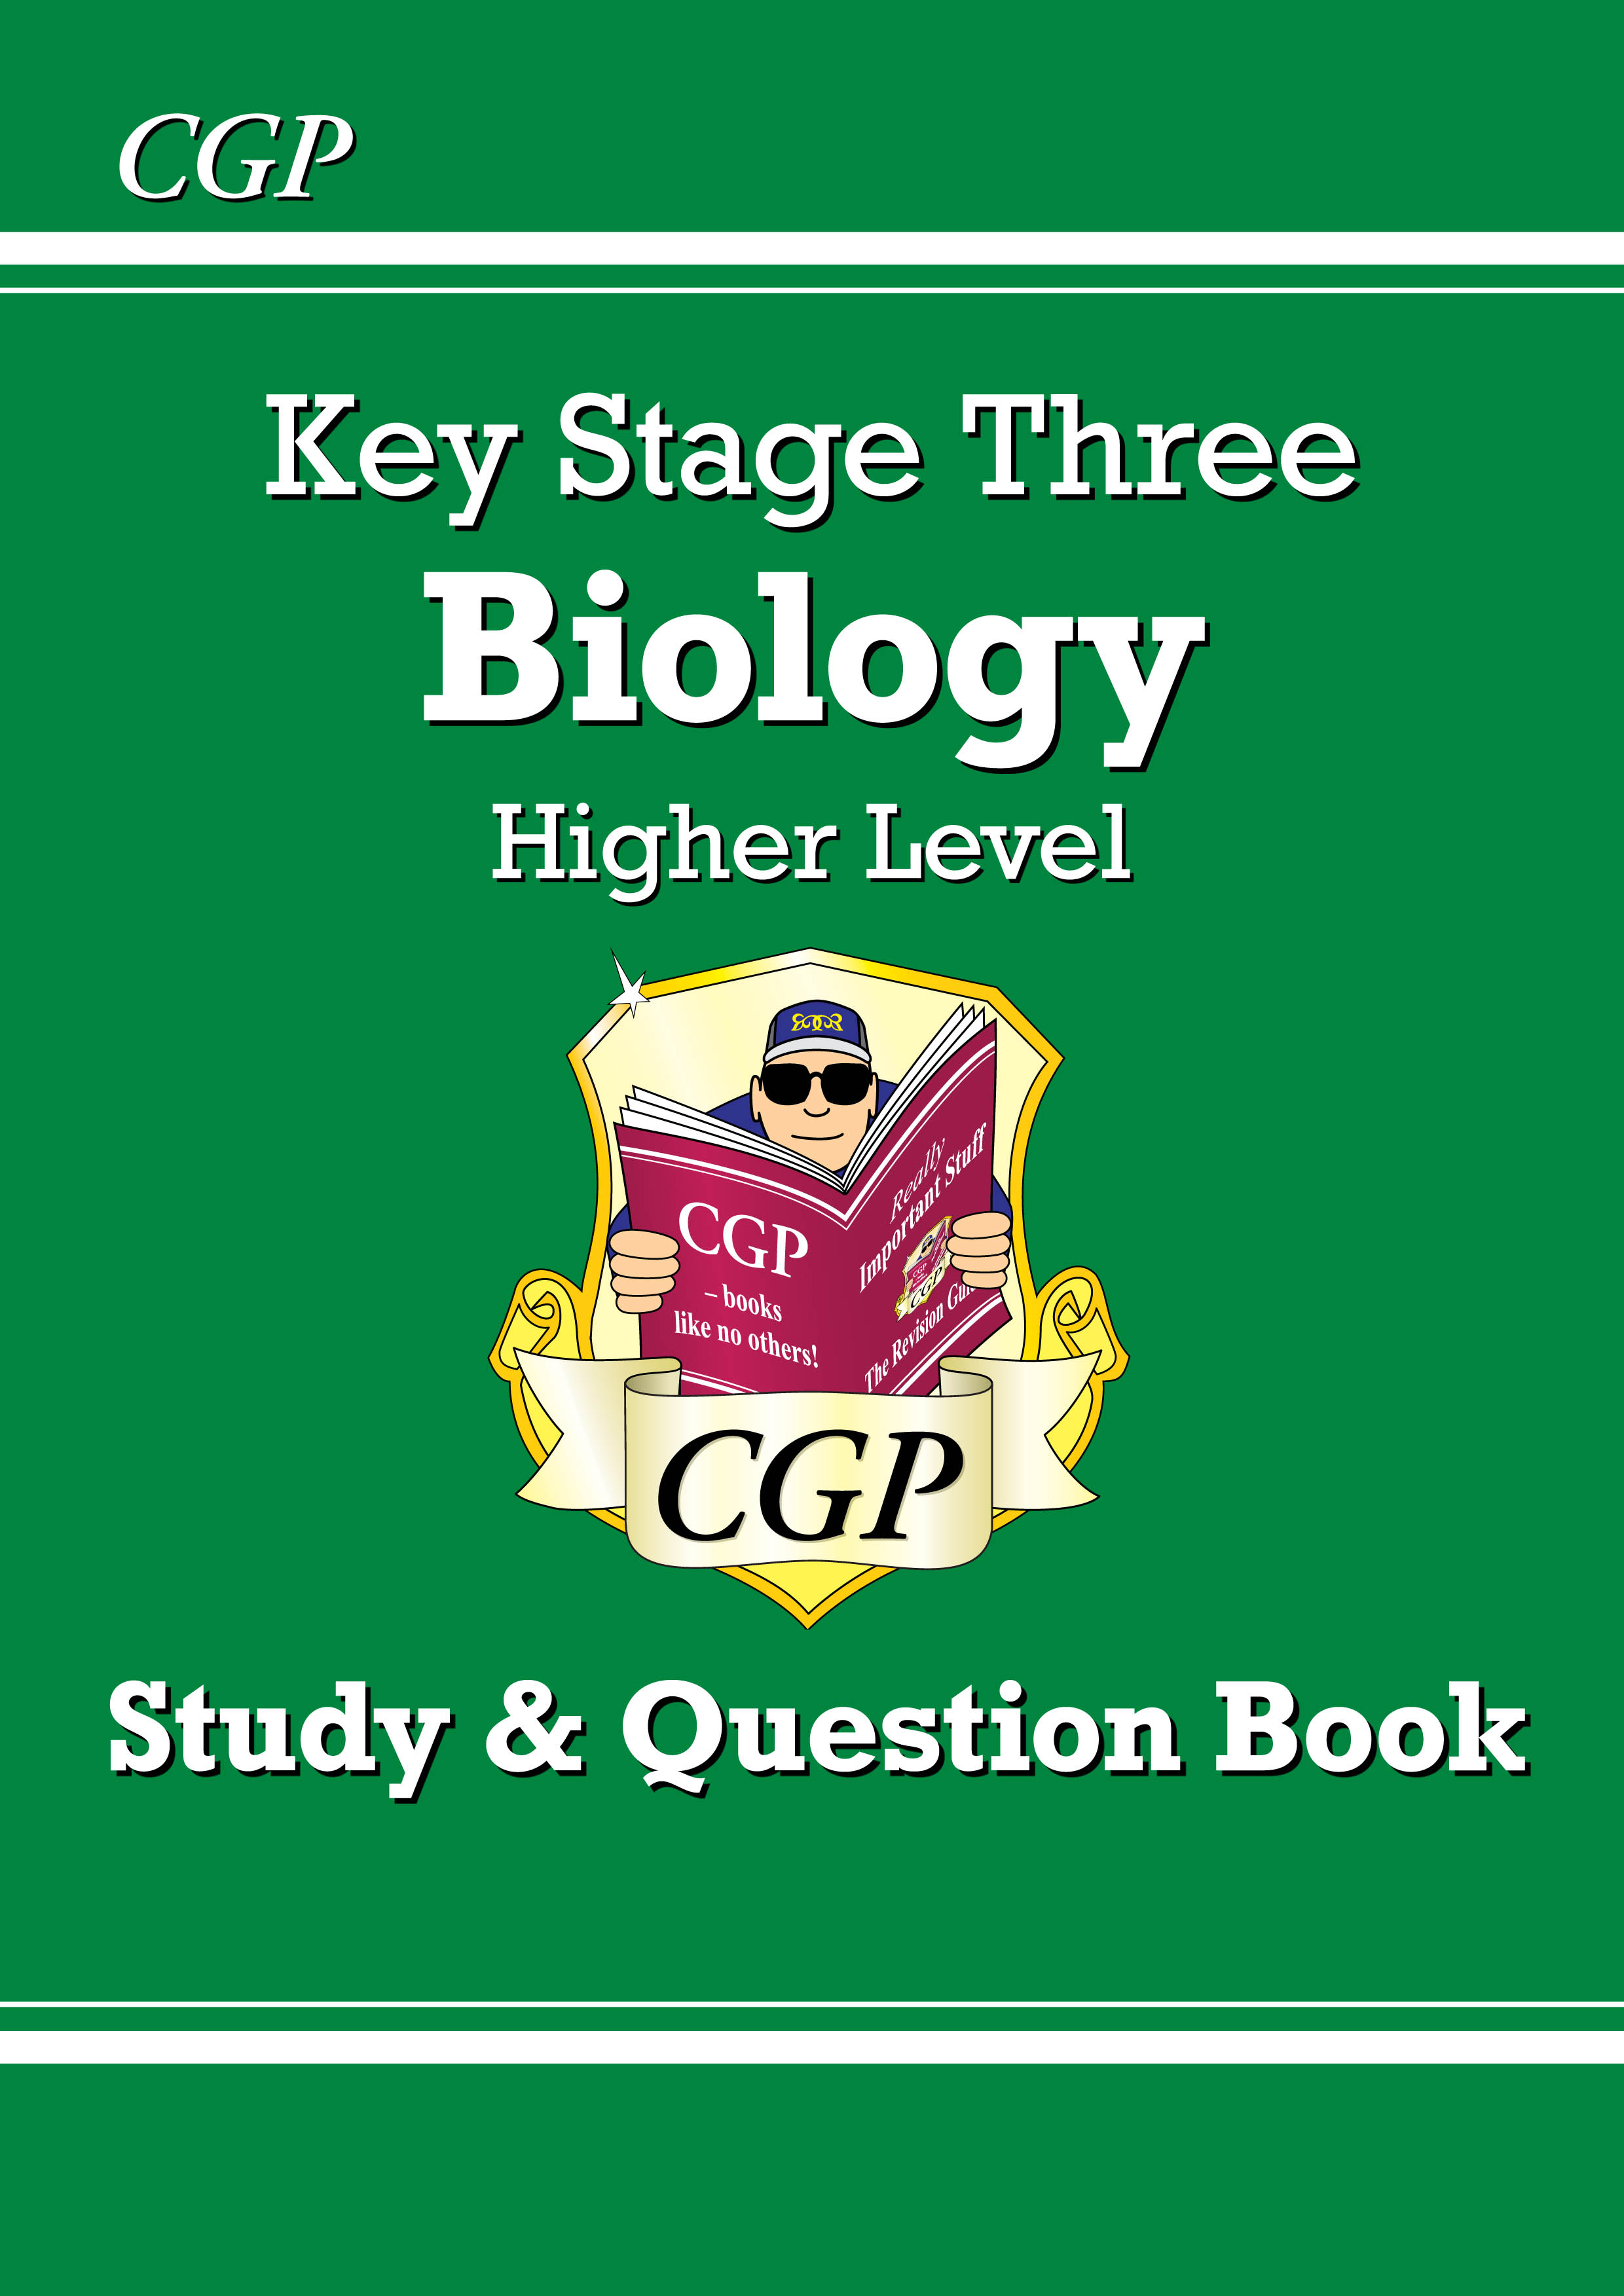 BHQ32DK - KS3 Biology Study & Question Book - Higher